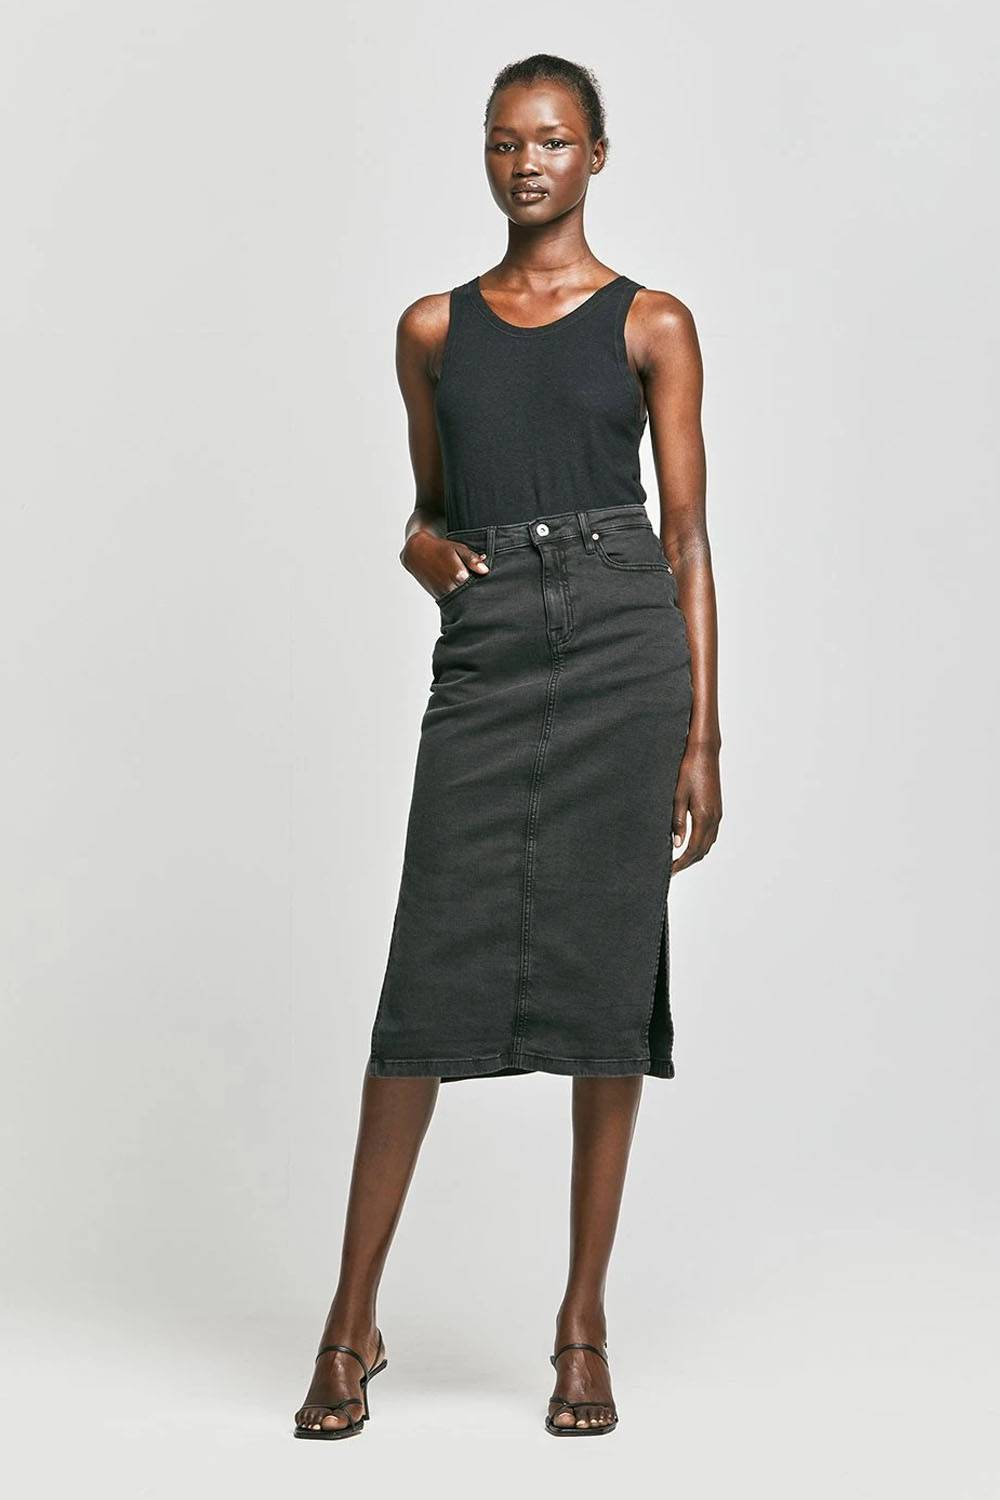 outland denim sustainable affordable skirt